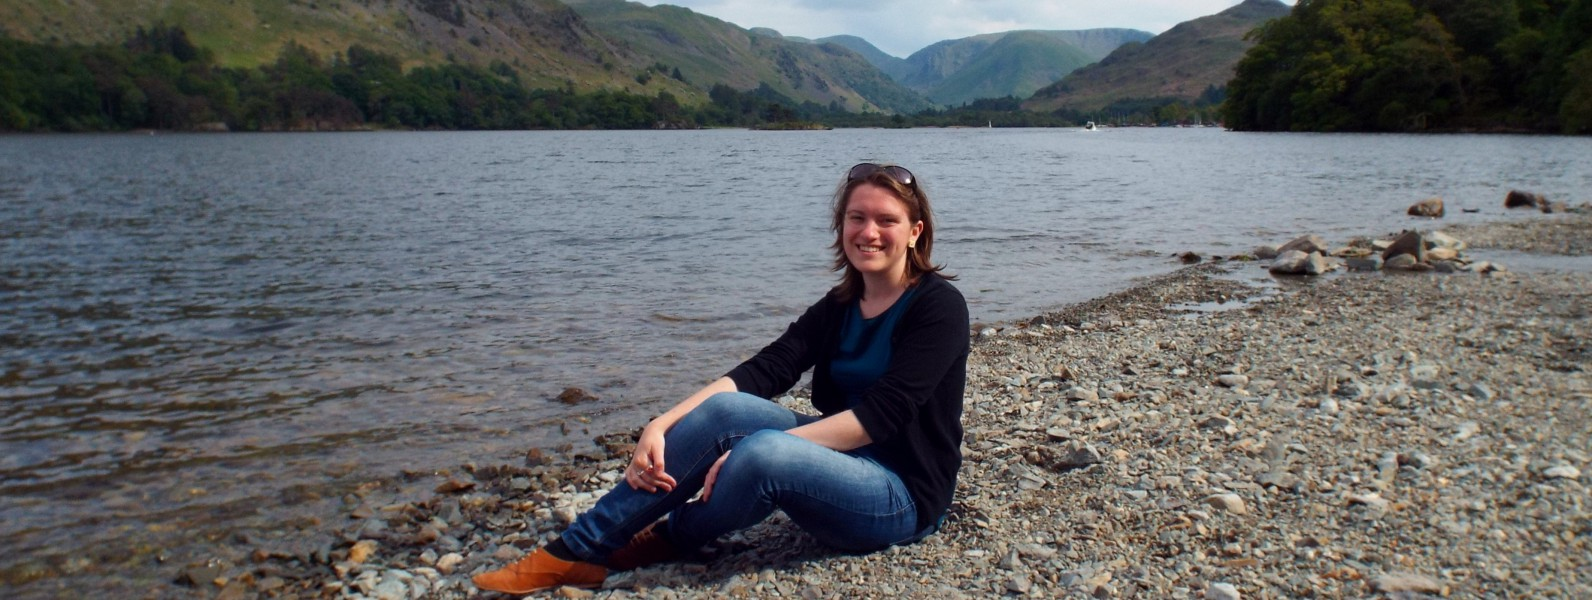 Katie Hale, Cumbrian writer and poet